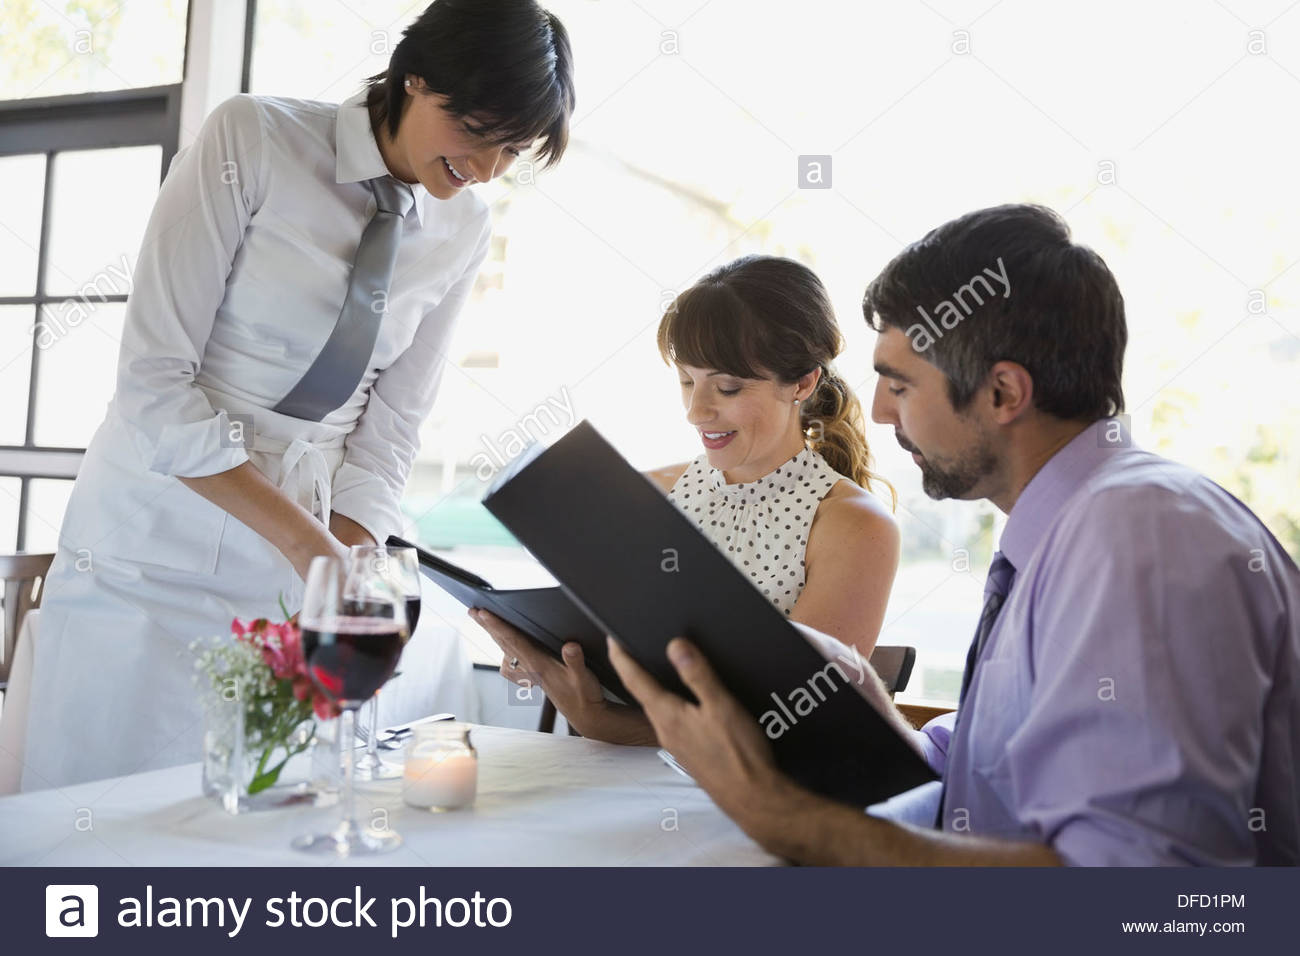 Waitress taking order from professional couple in restaurant - Stock Image